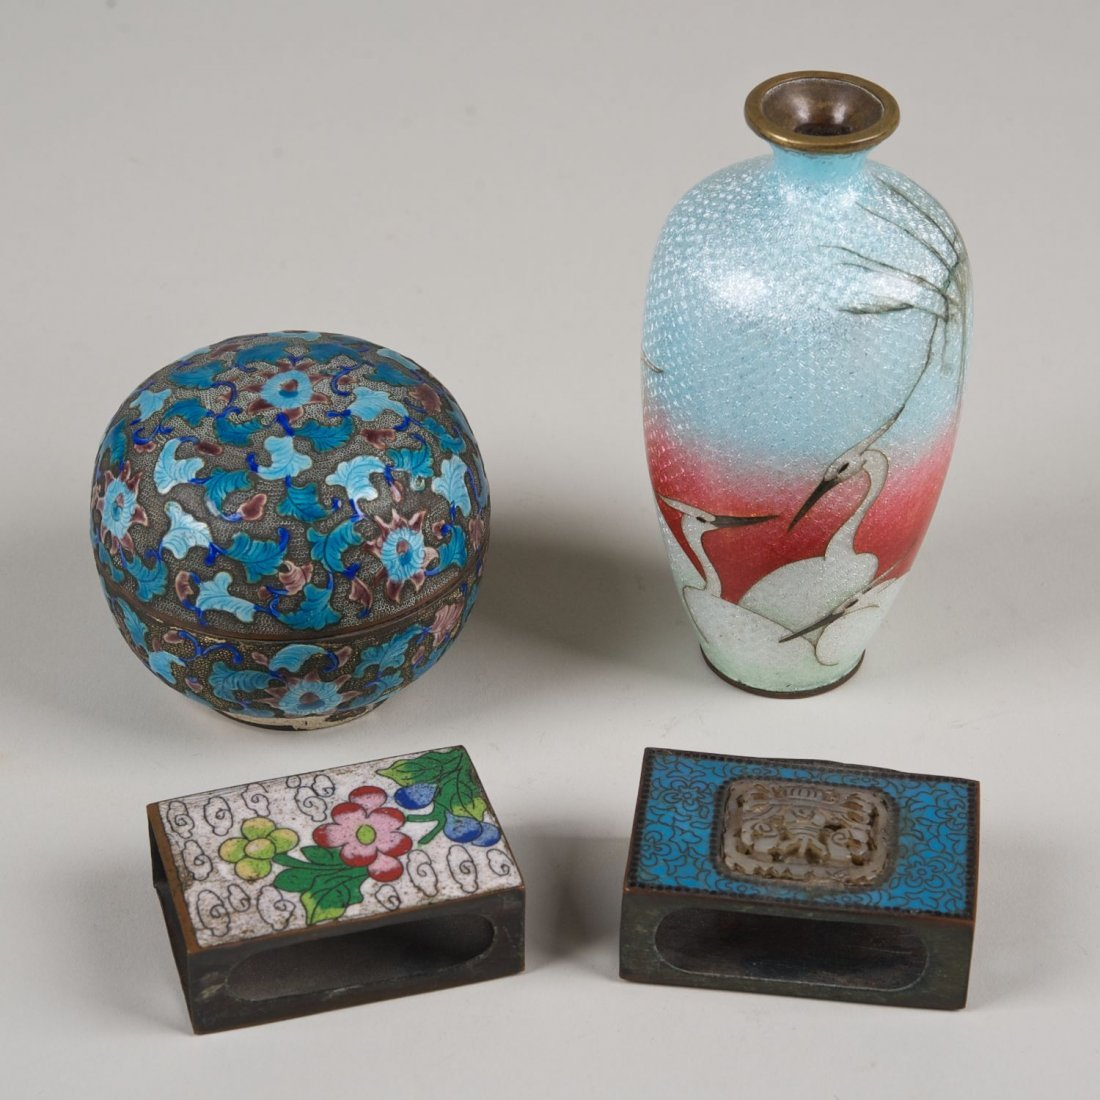 (4) pcs. Chinese and Japanese cloisonne